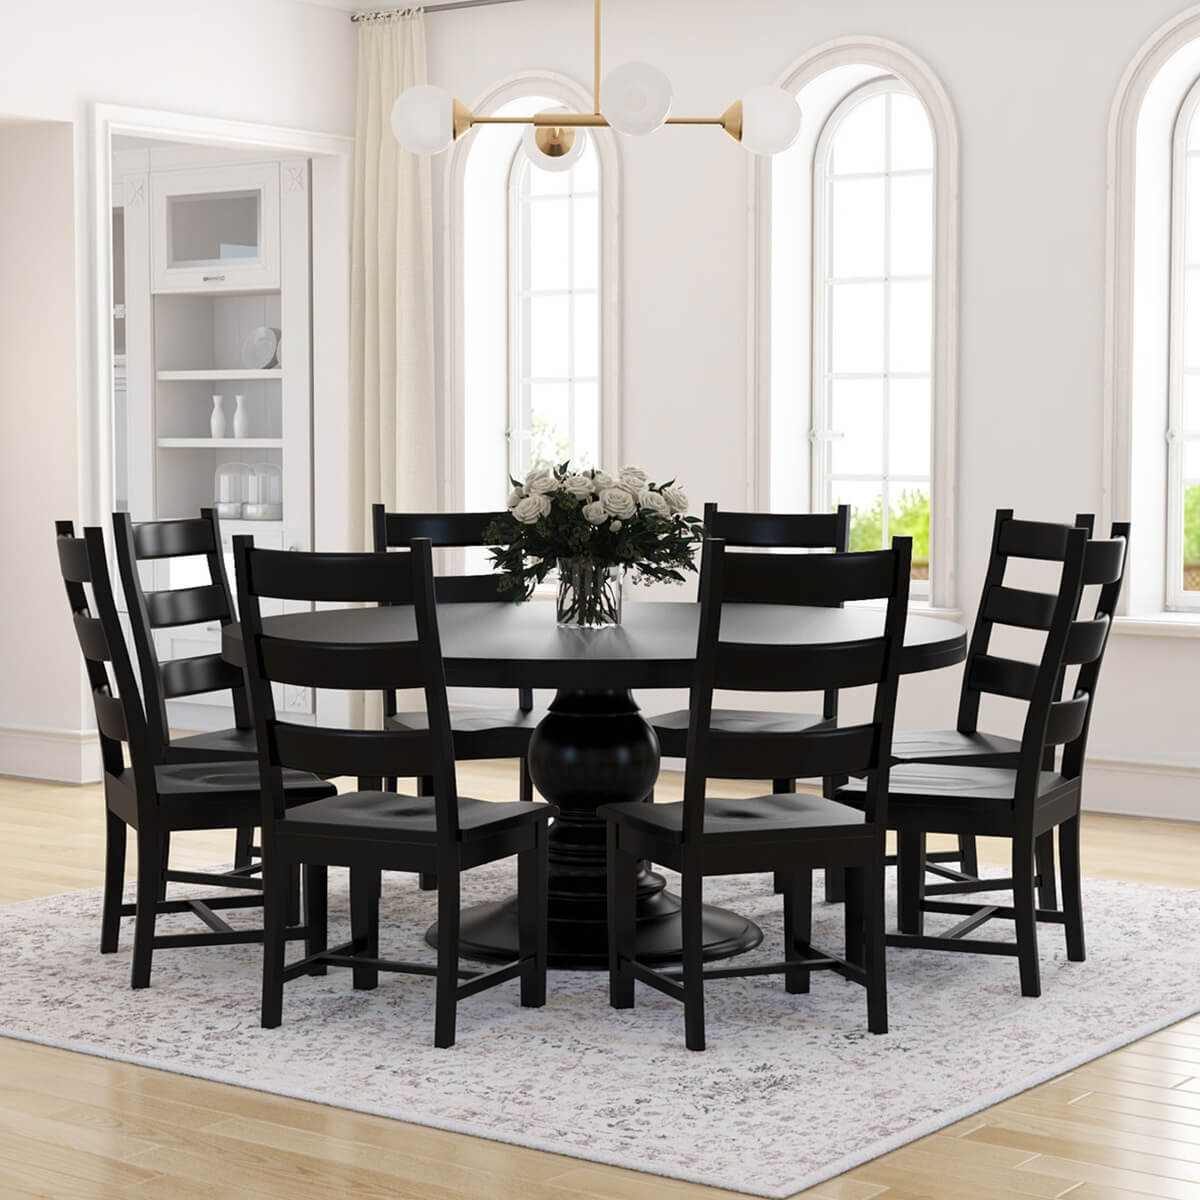 Nottingham rustic solid wood black round dining room table set for Solid wood dining table sets